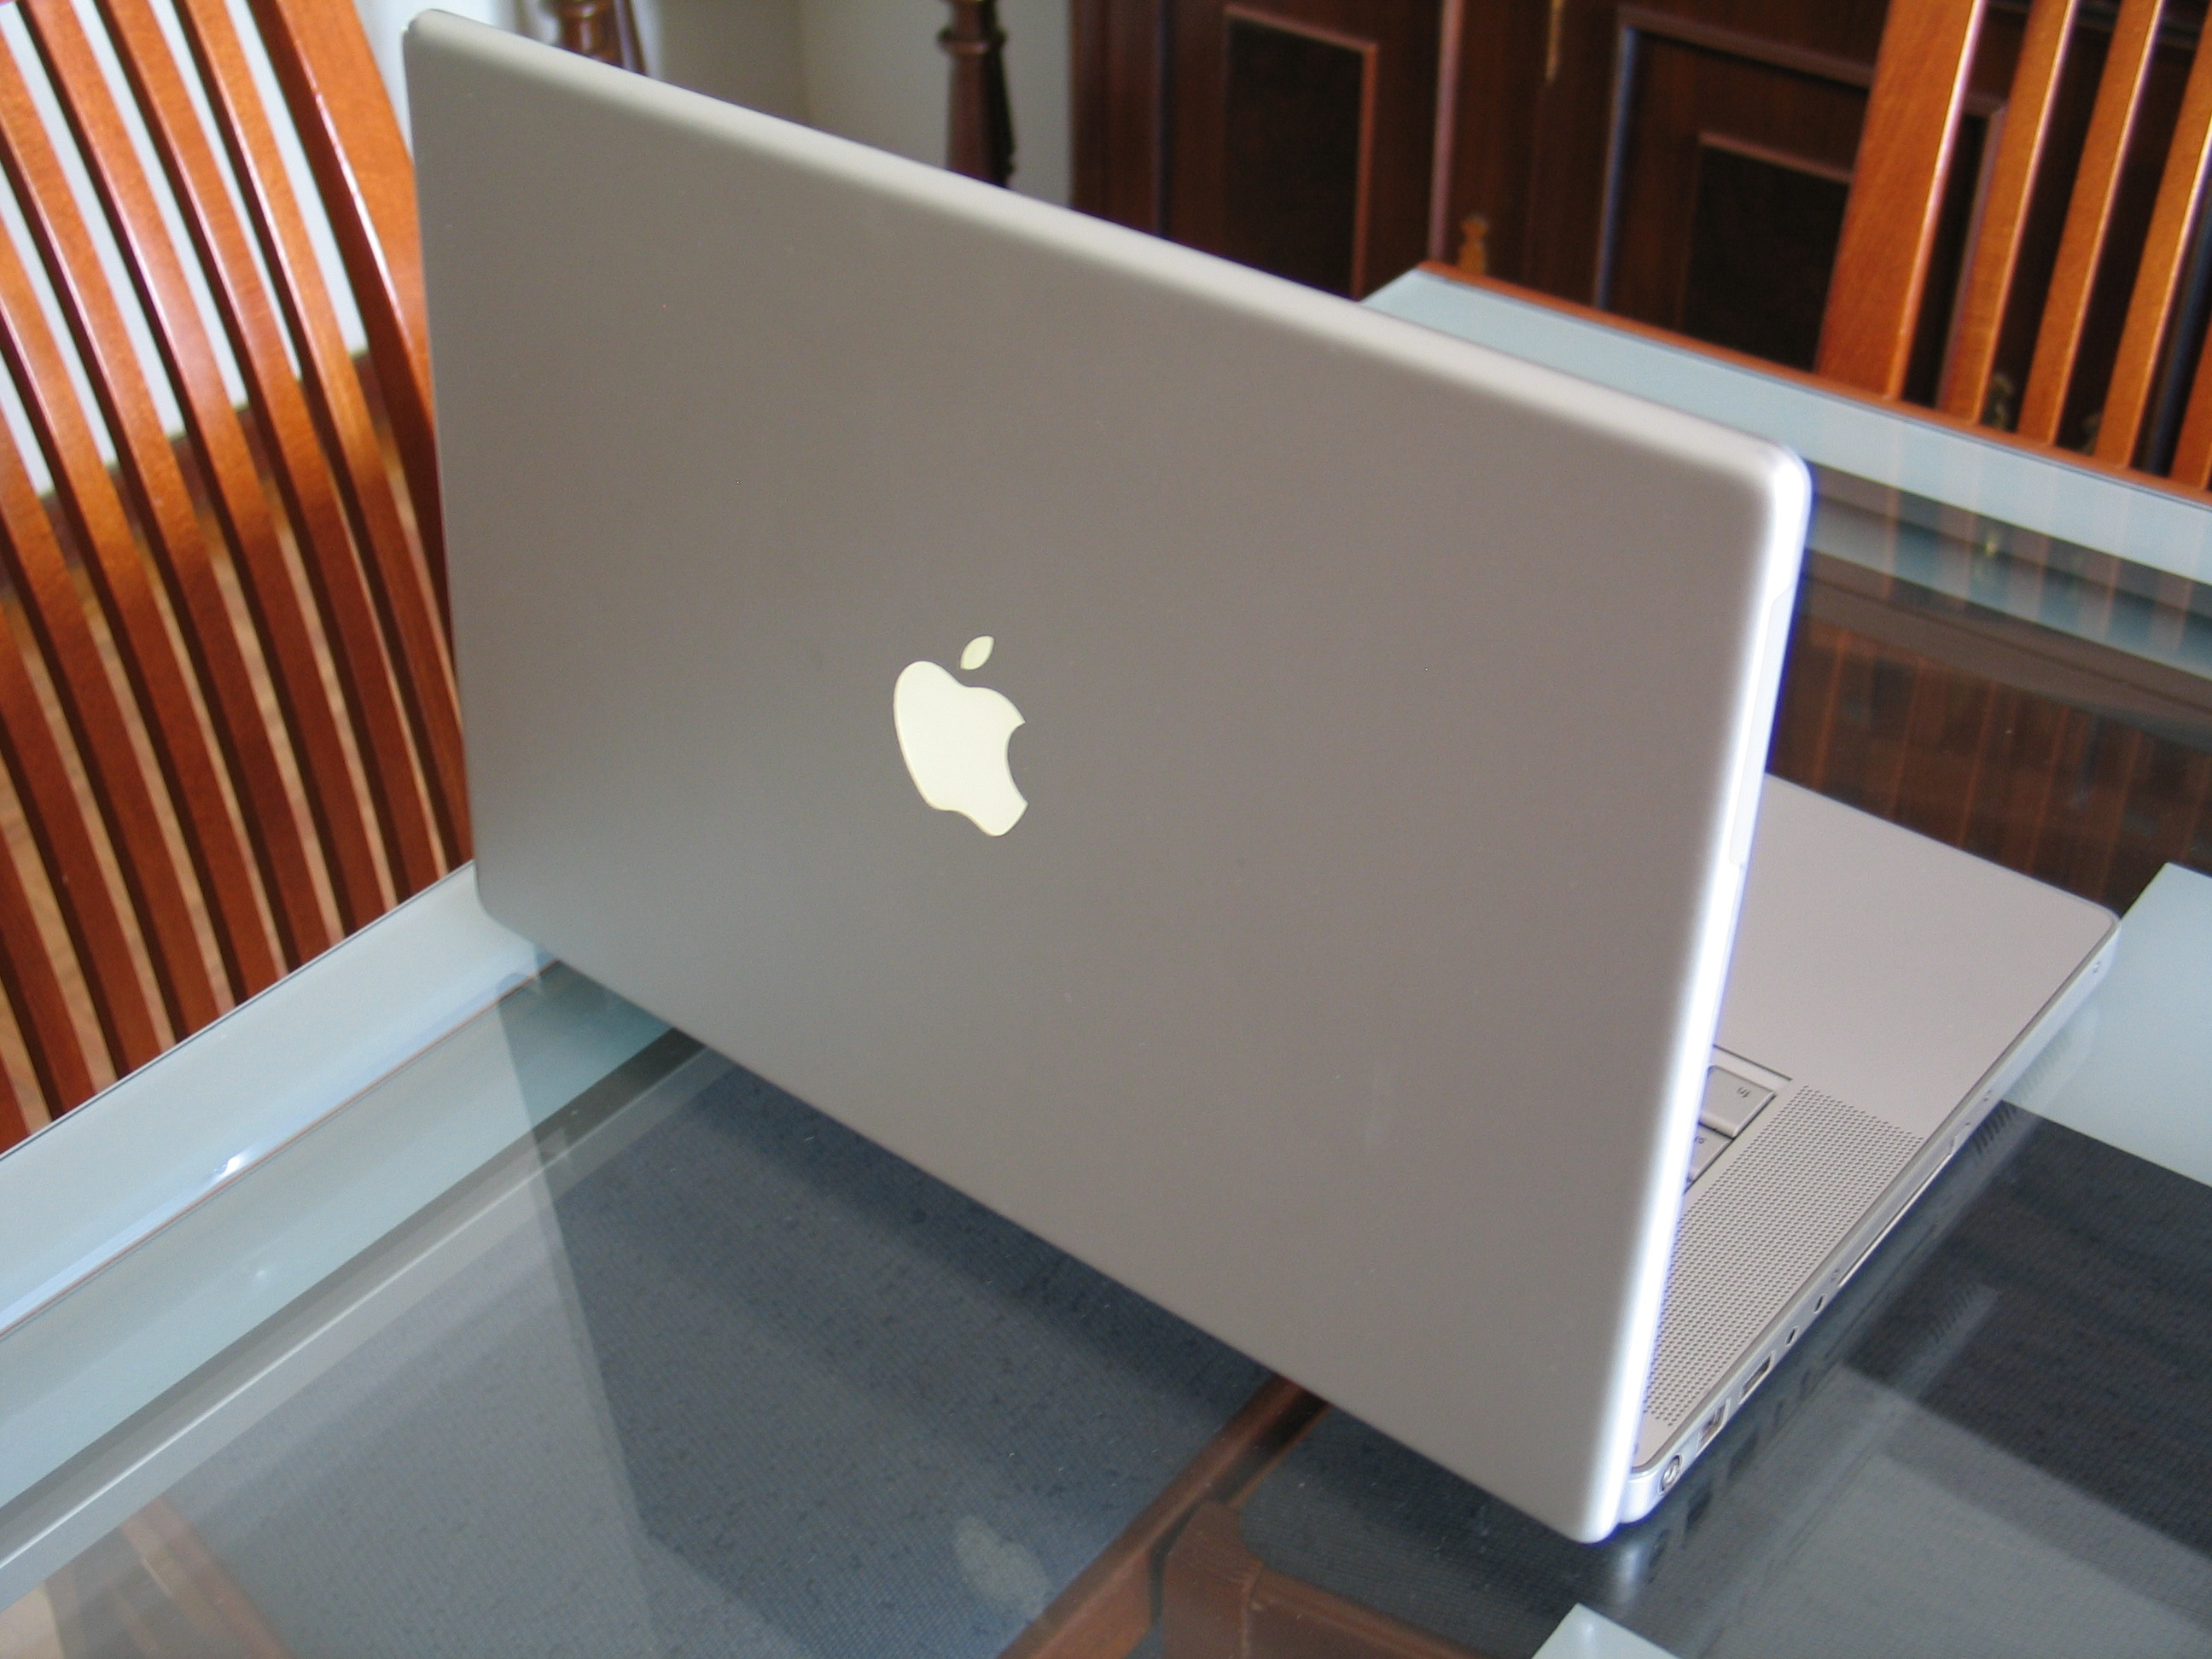 Powerbook G4 (óptimo estado)